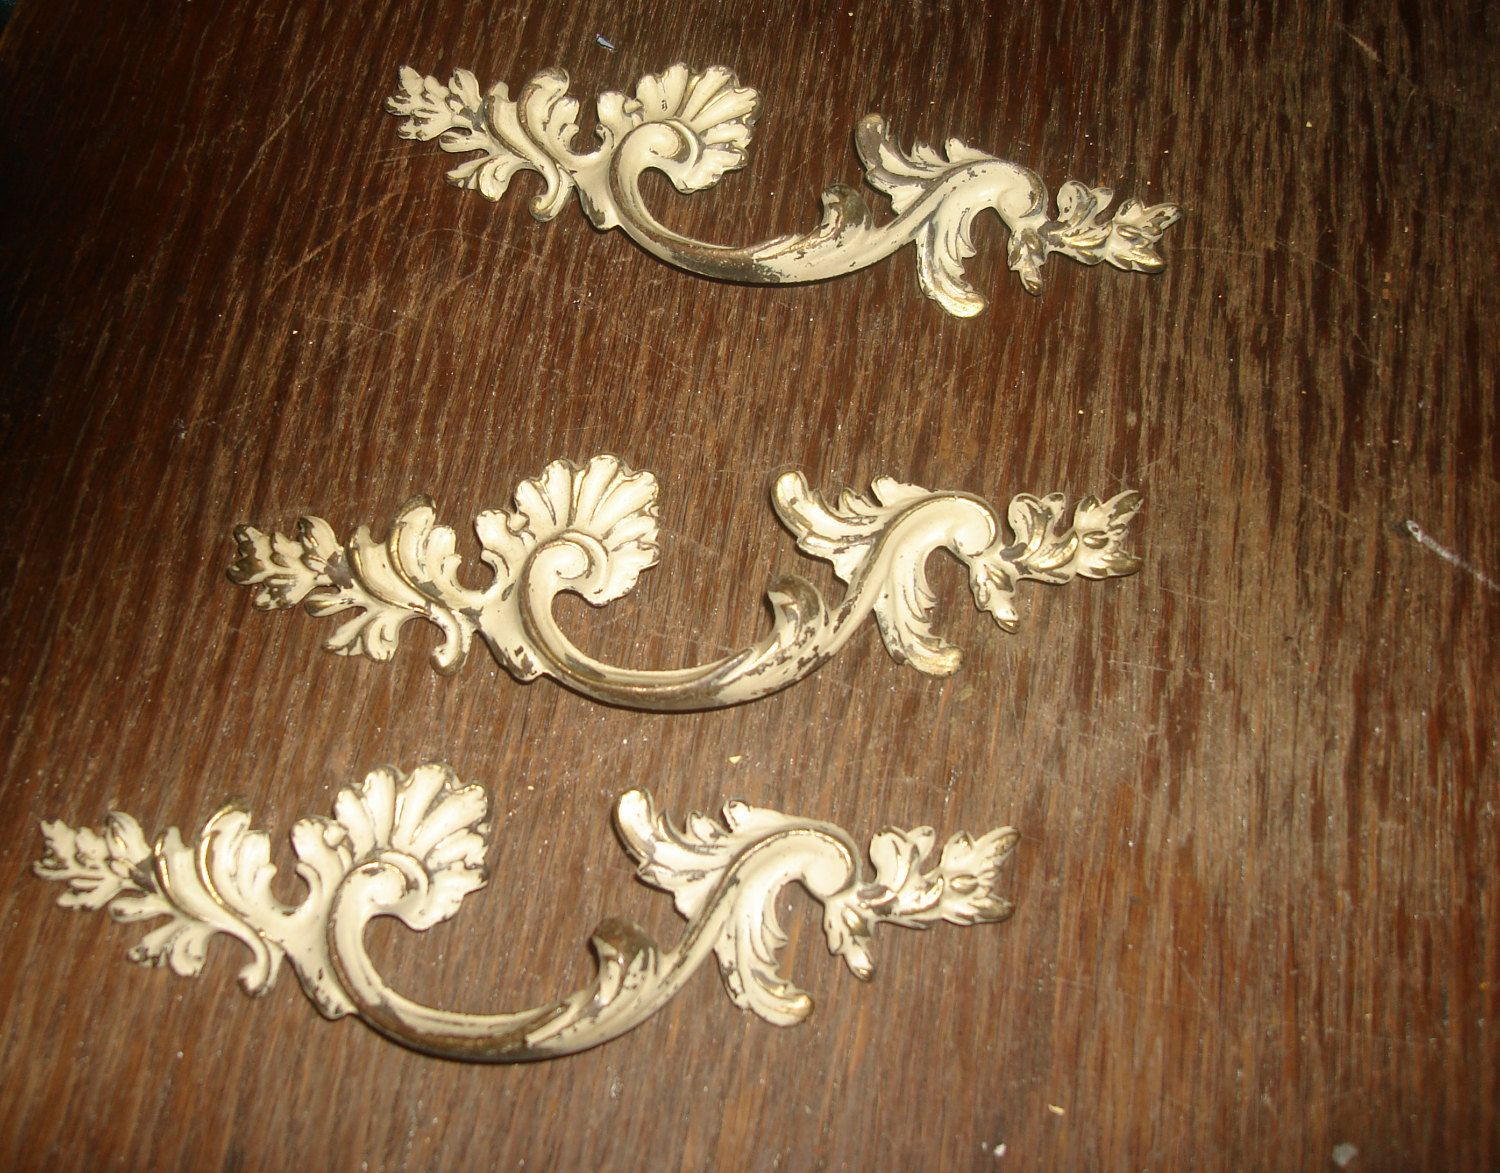 Antique drawer pulls fancy french white and solid brass pulls ...